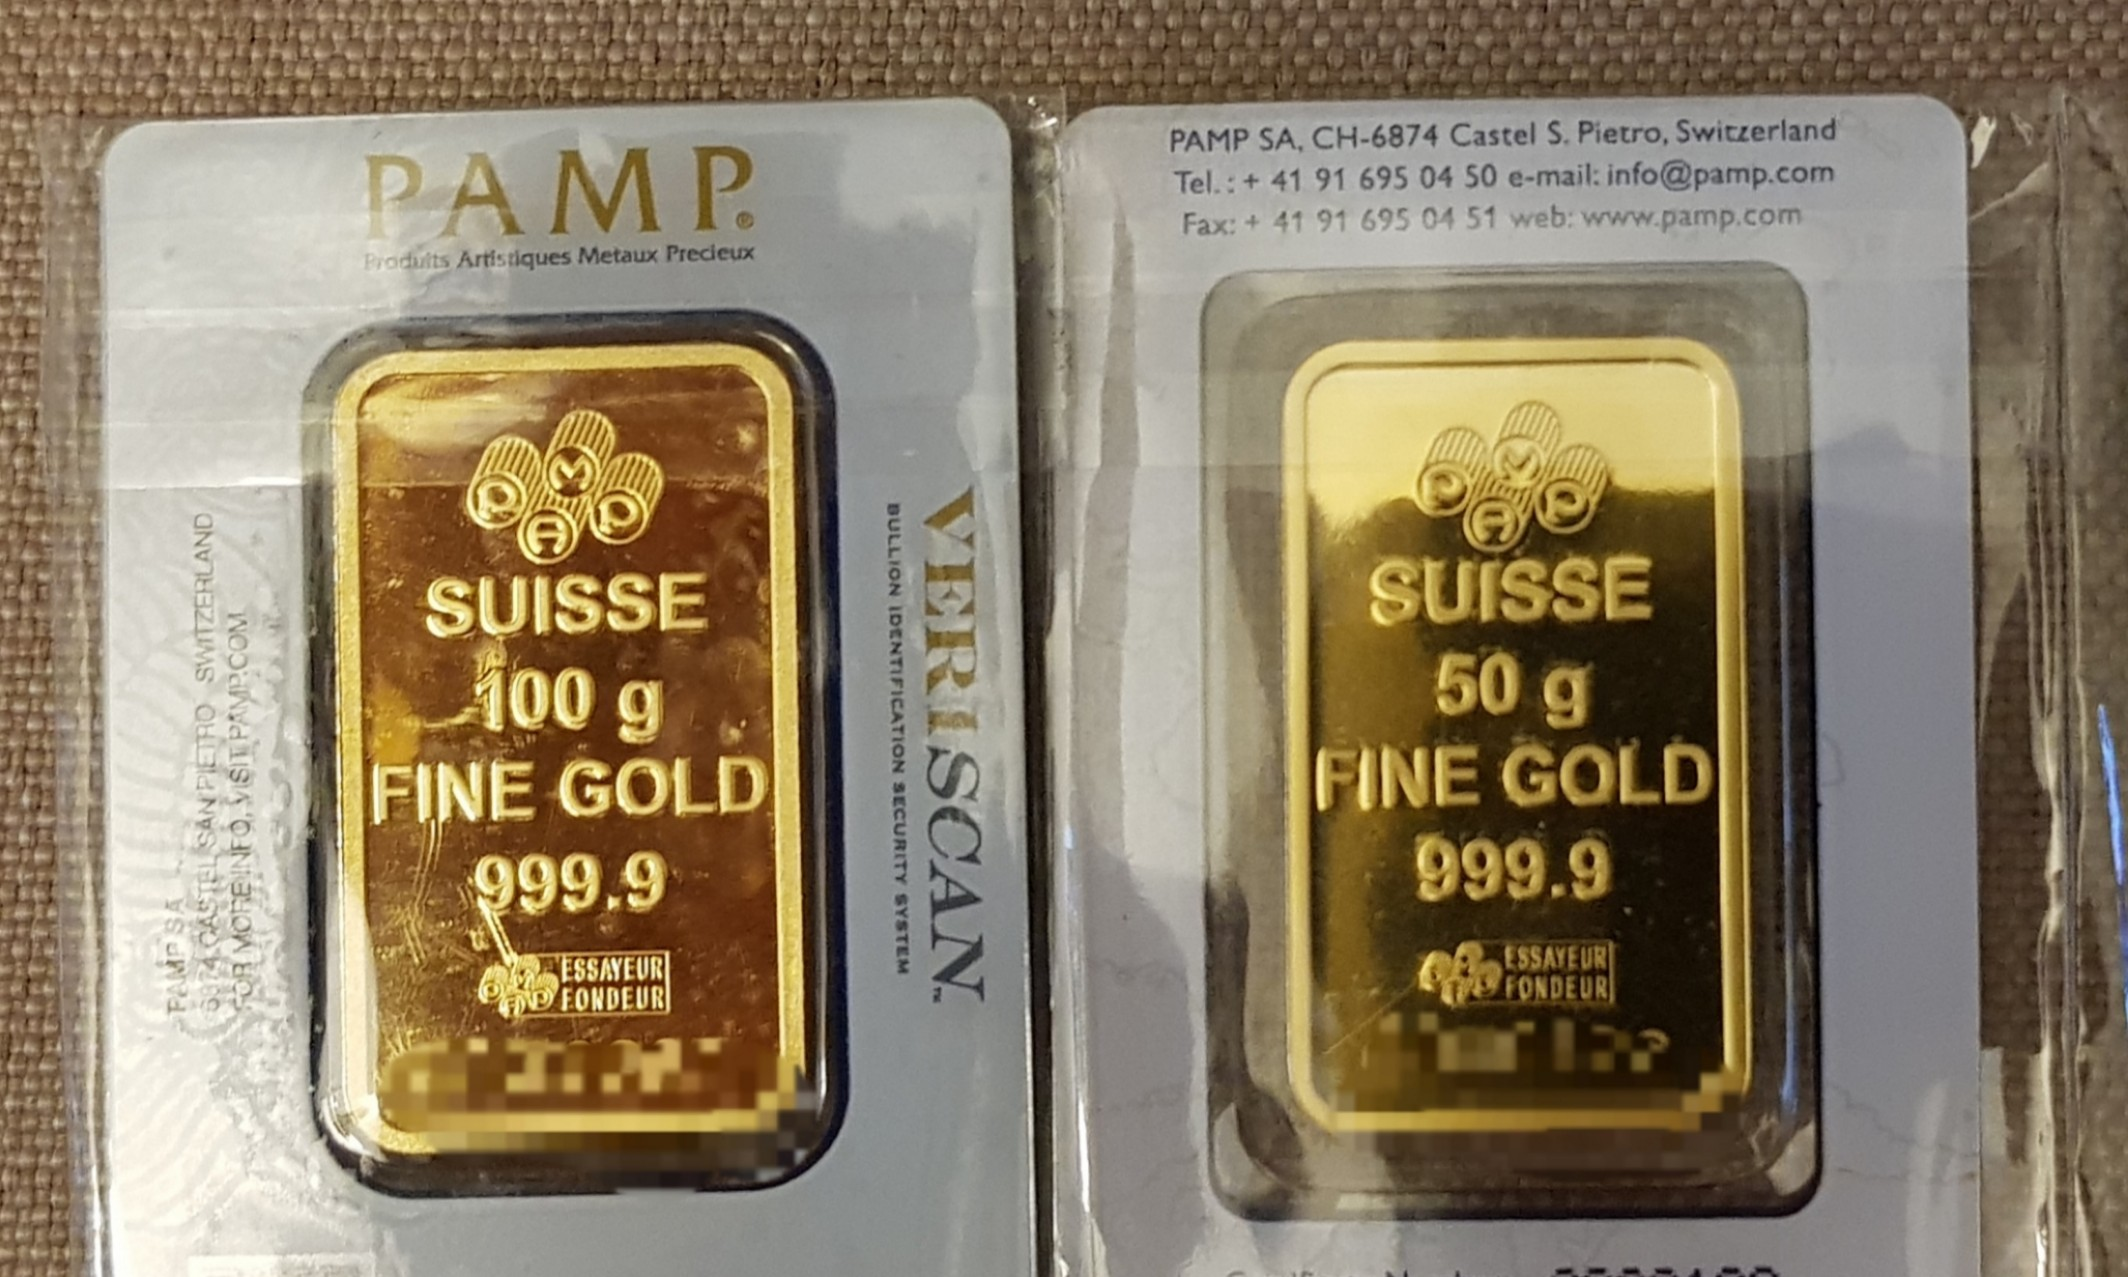 PAMP Gold 999.9 for Sale